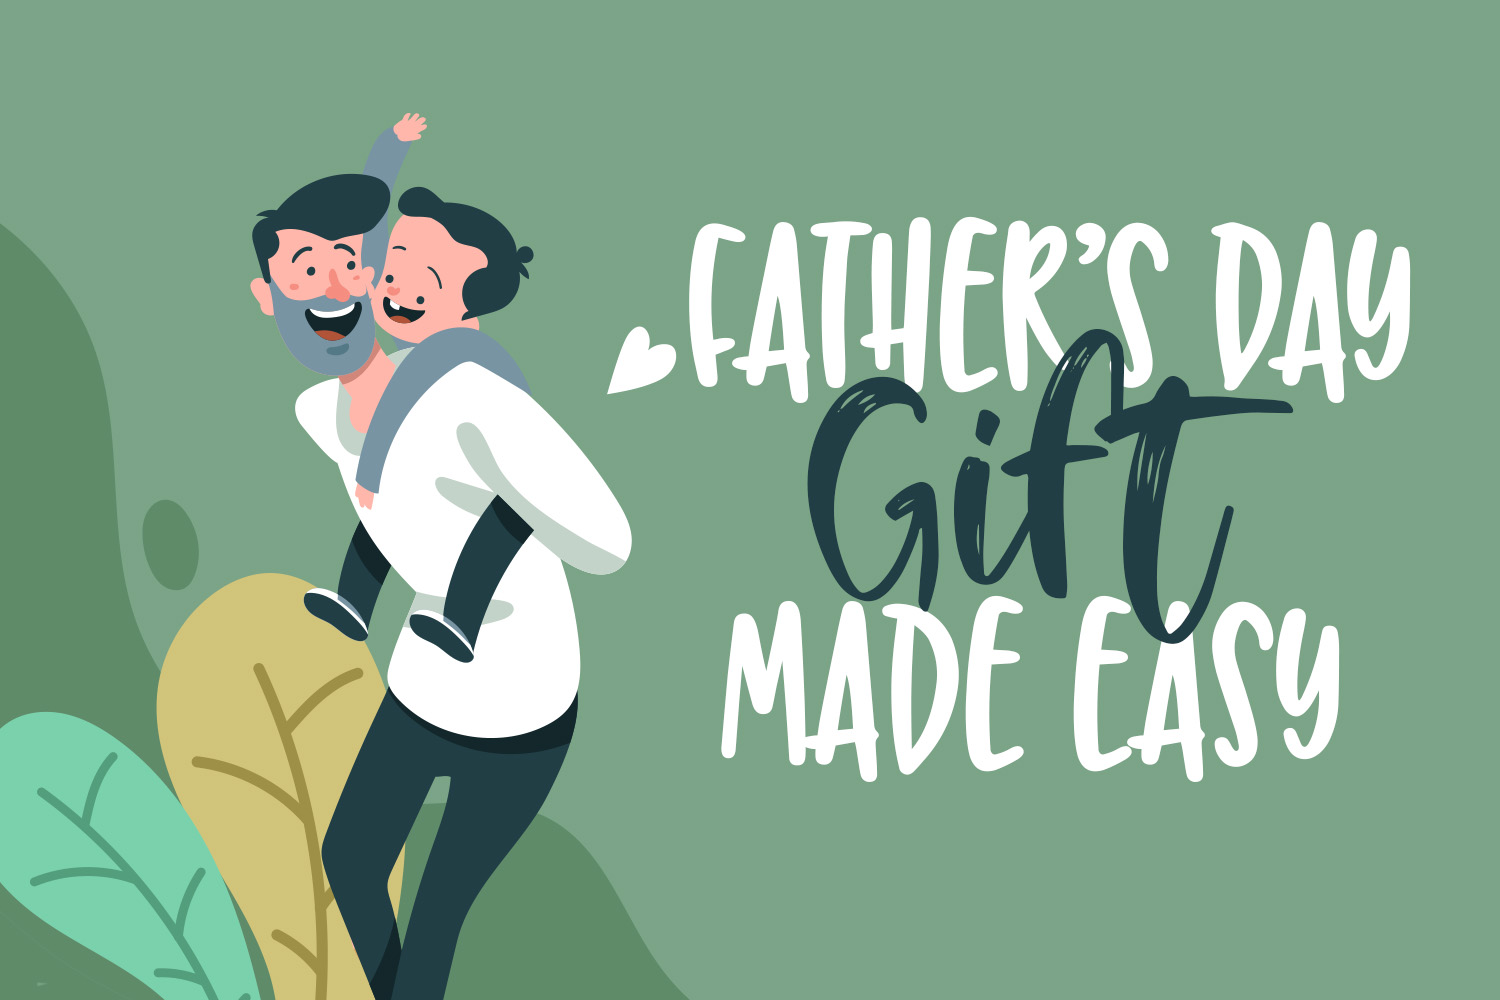 Father's Day Gifts Made Easy